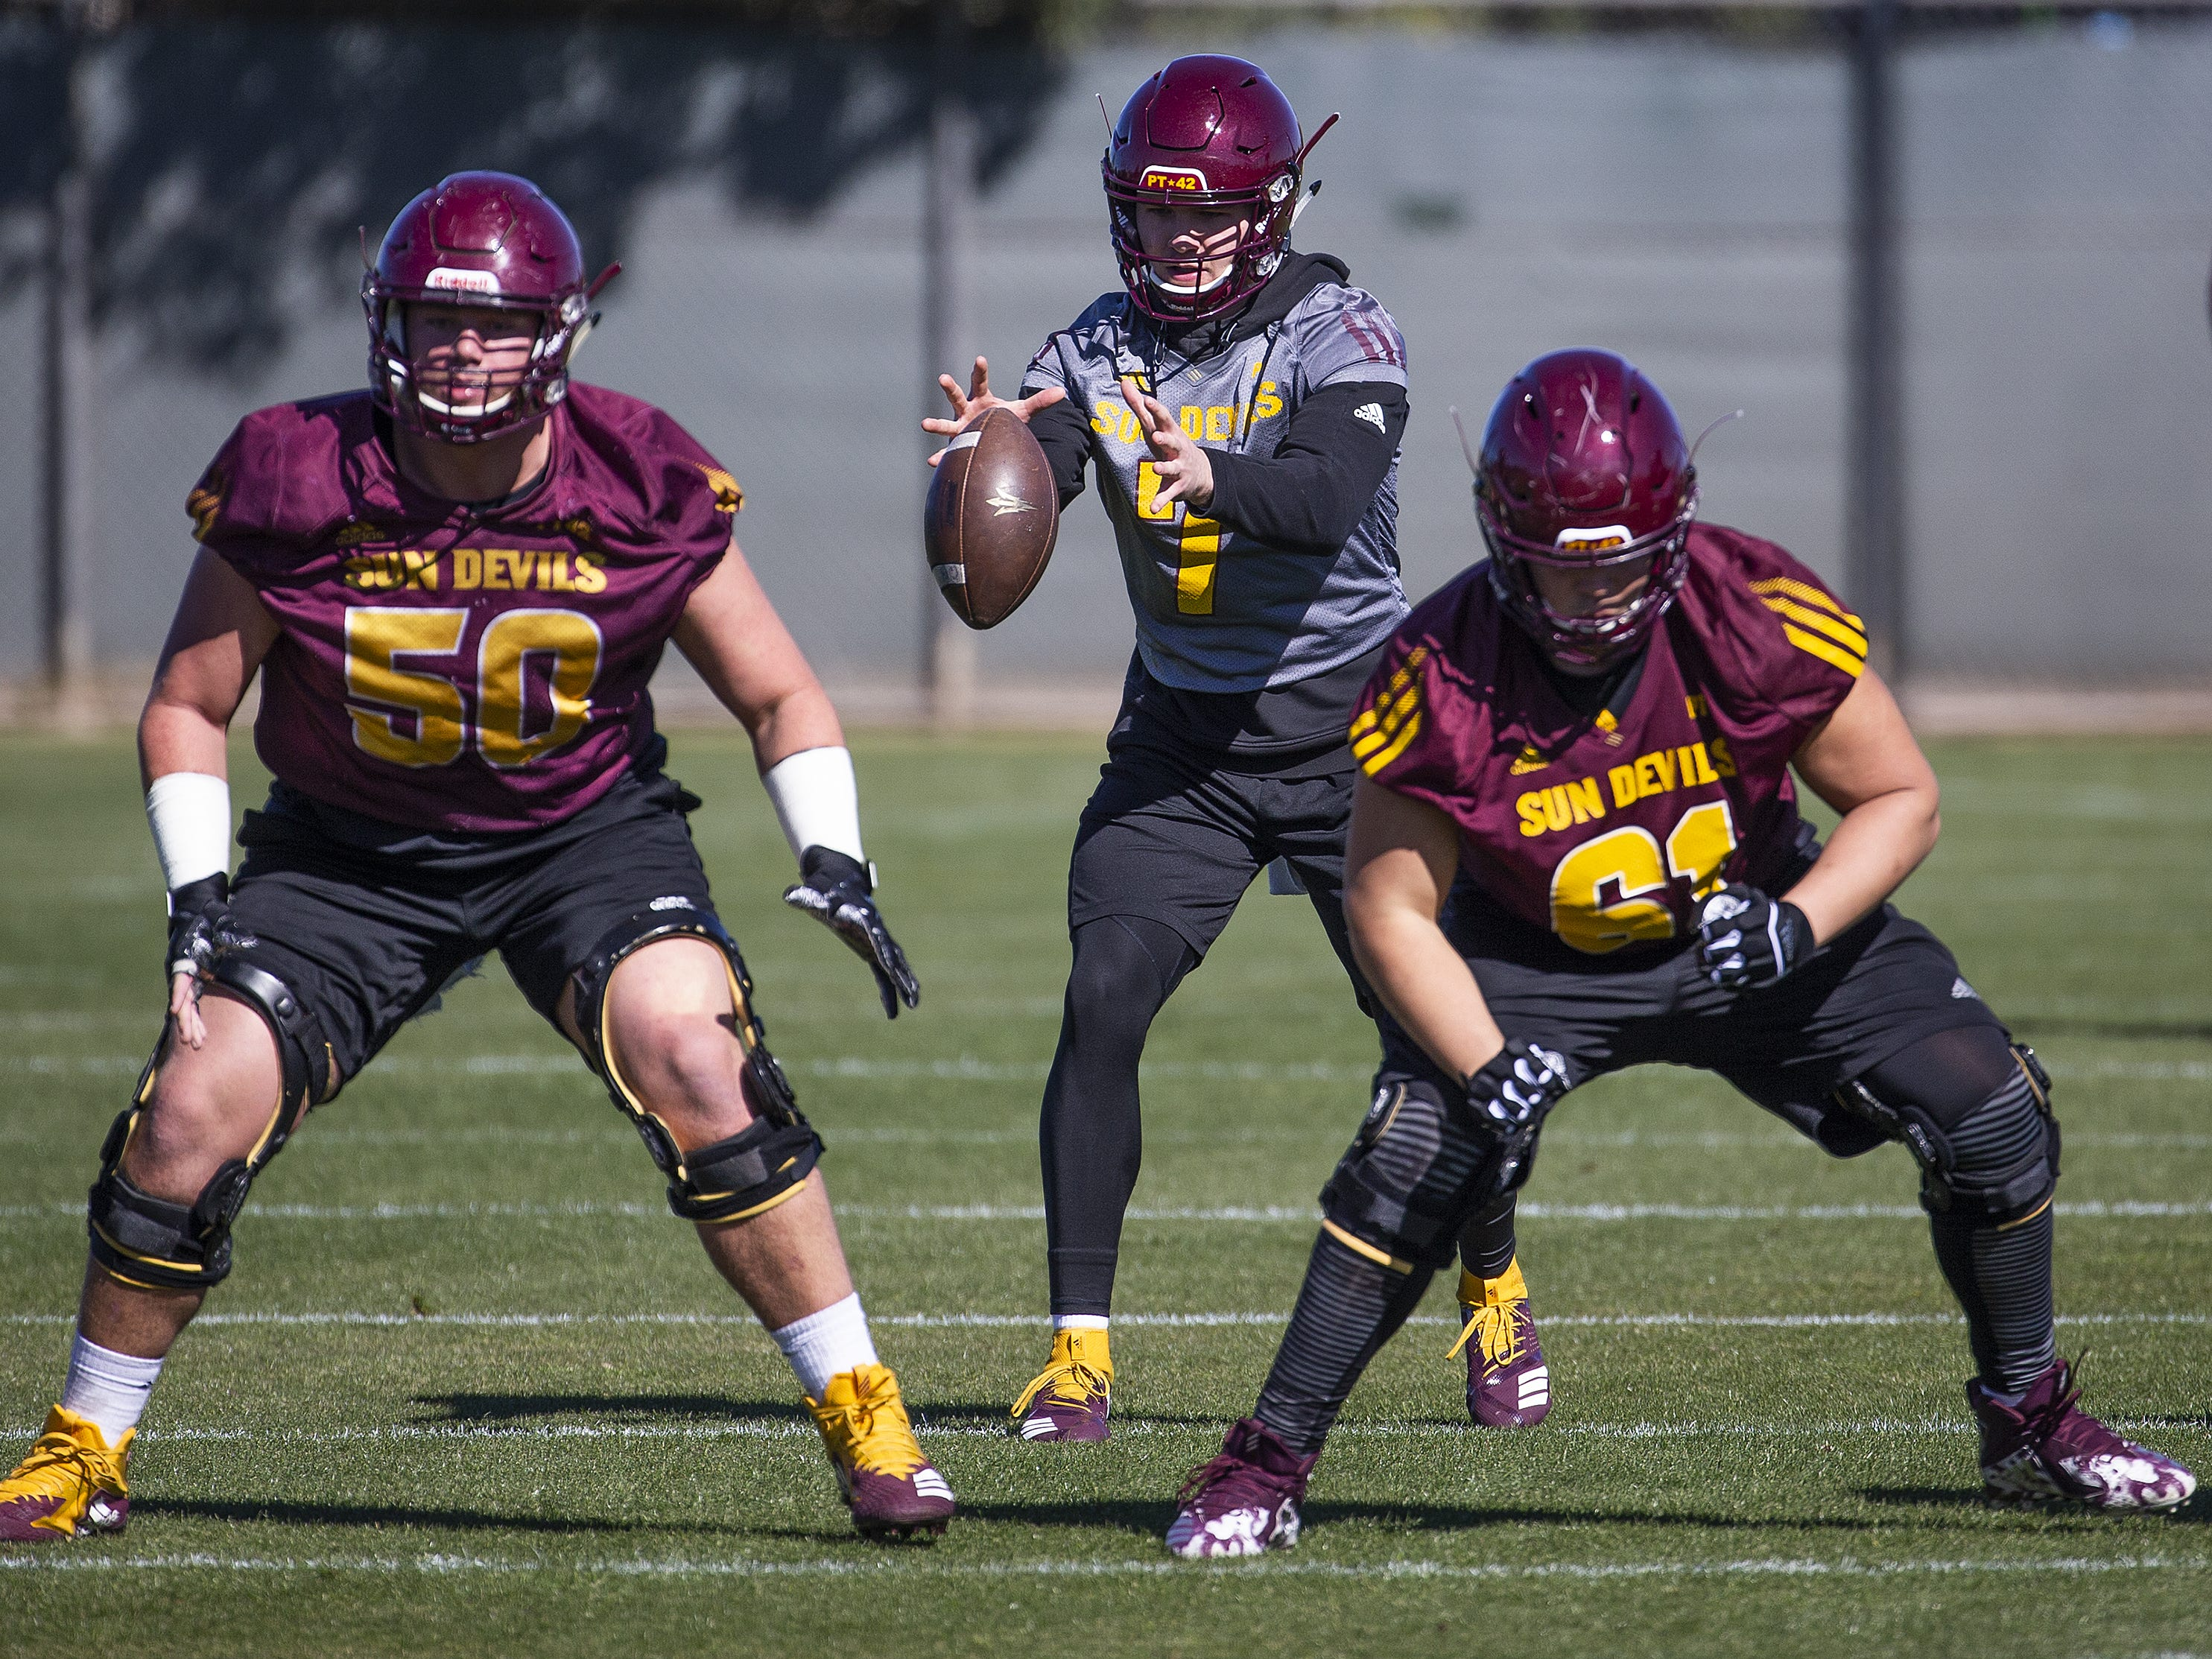 The Arizona State University football team practiced in Tempe, Tuesday, February 26, 2019.   Quarterback Ethan Long takes the snap as offensive linemen Jarrett Bell, left, and Dohnovan West, prepare to block.